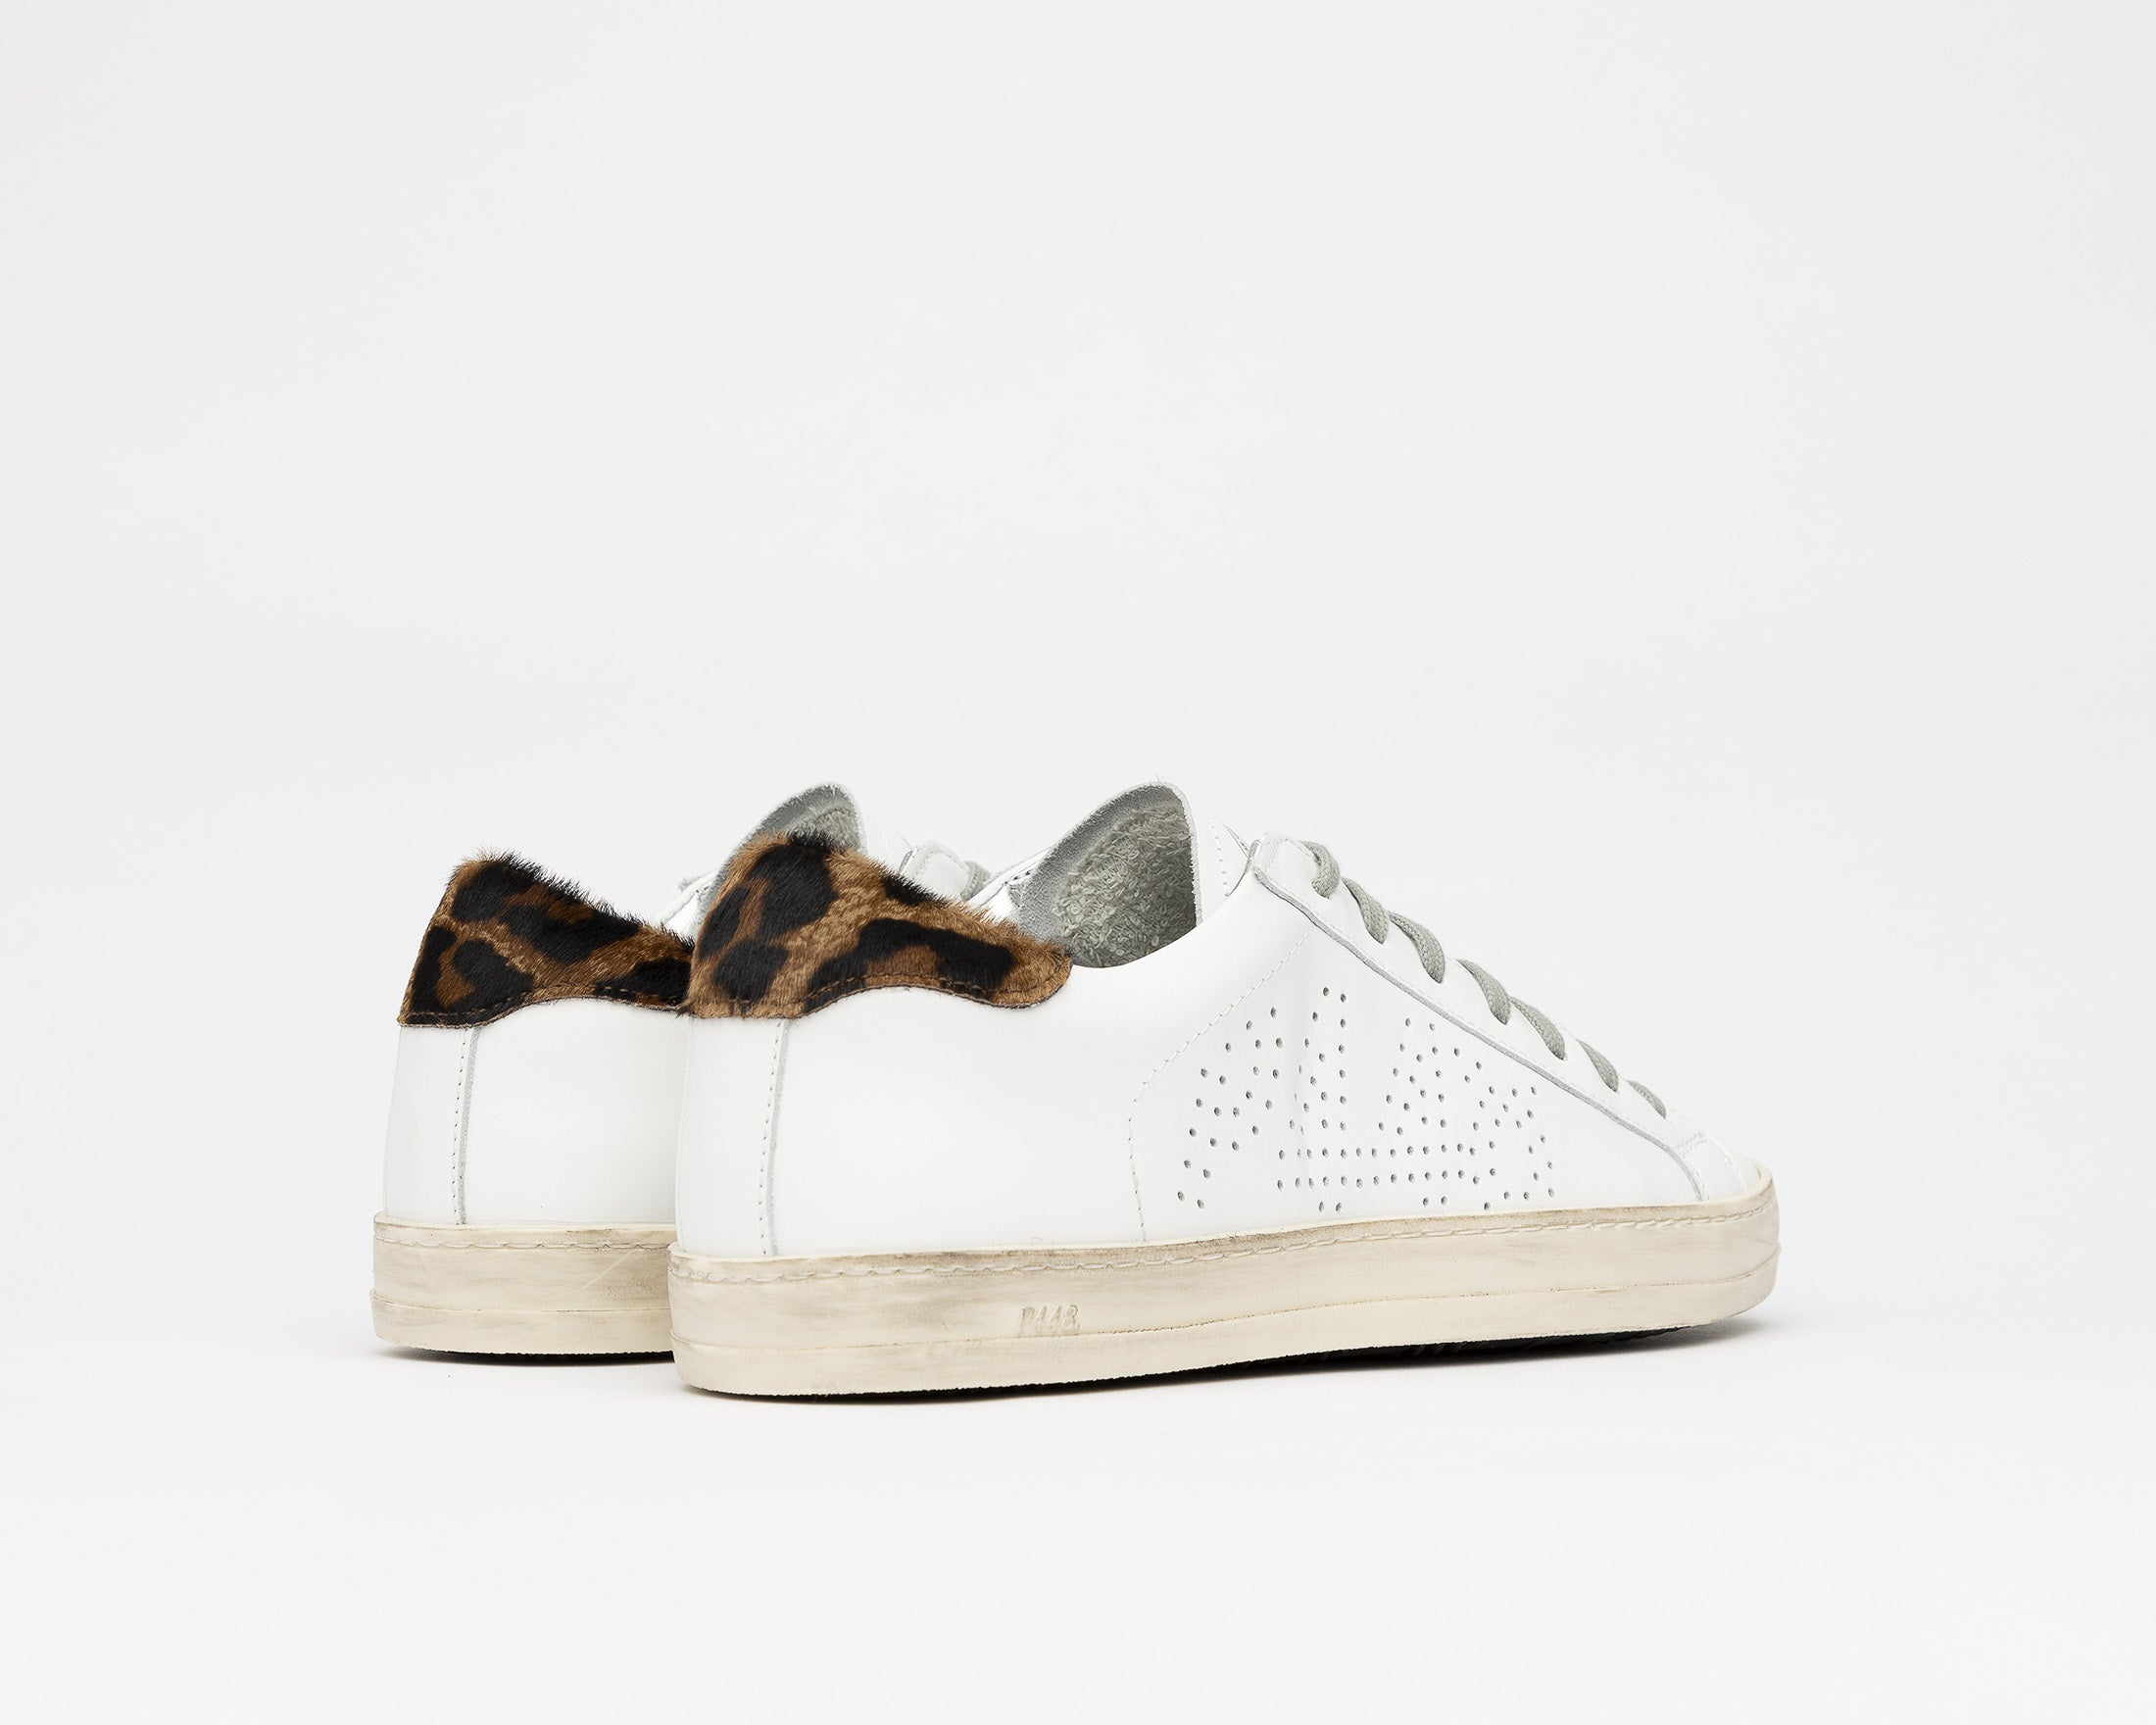 John Low-Top Sneaker in White/Cleo - Back